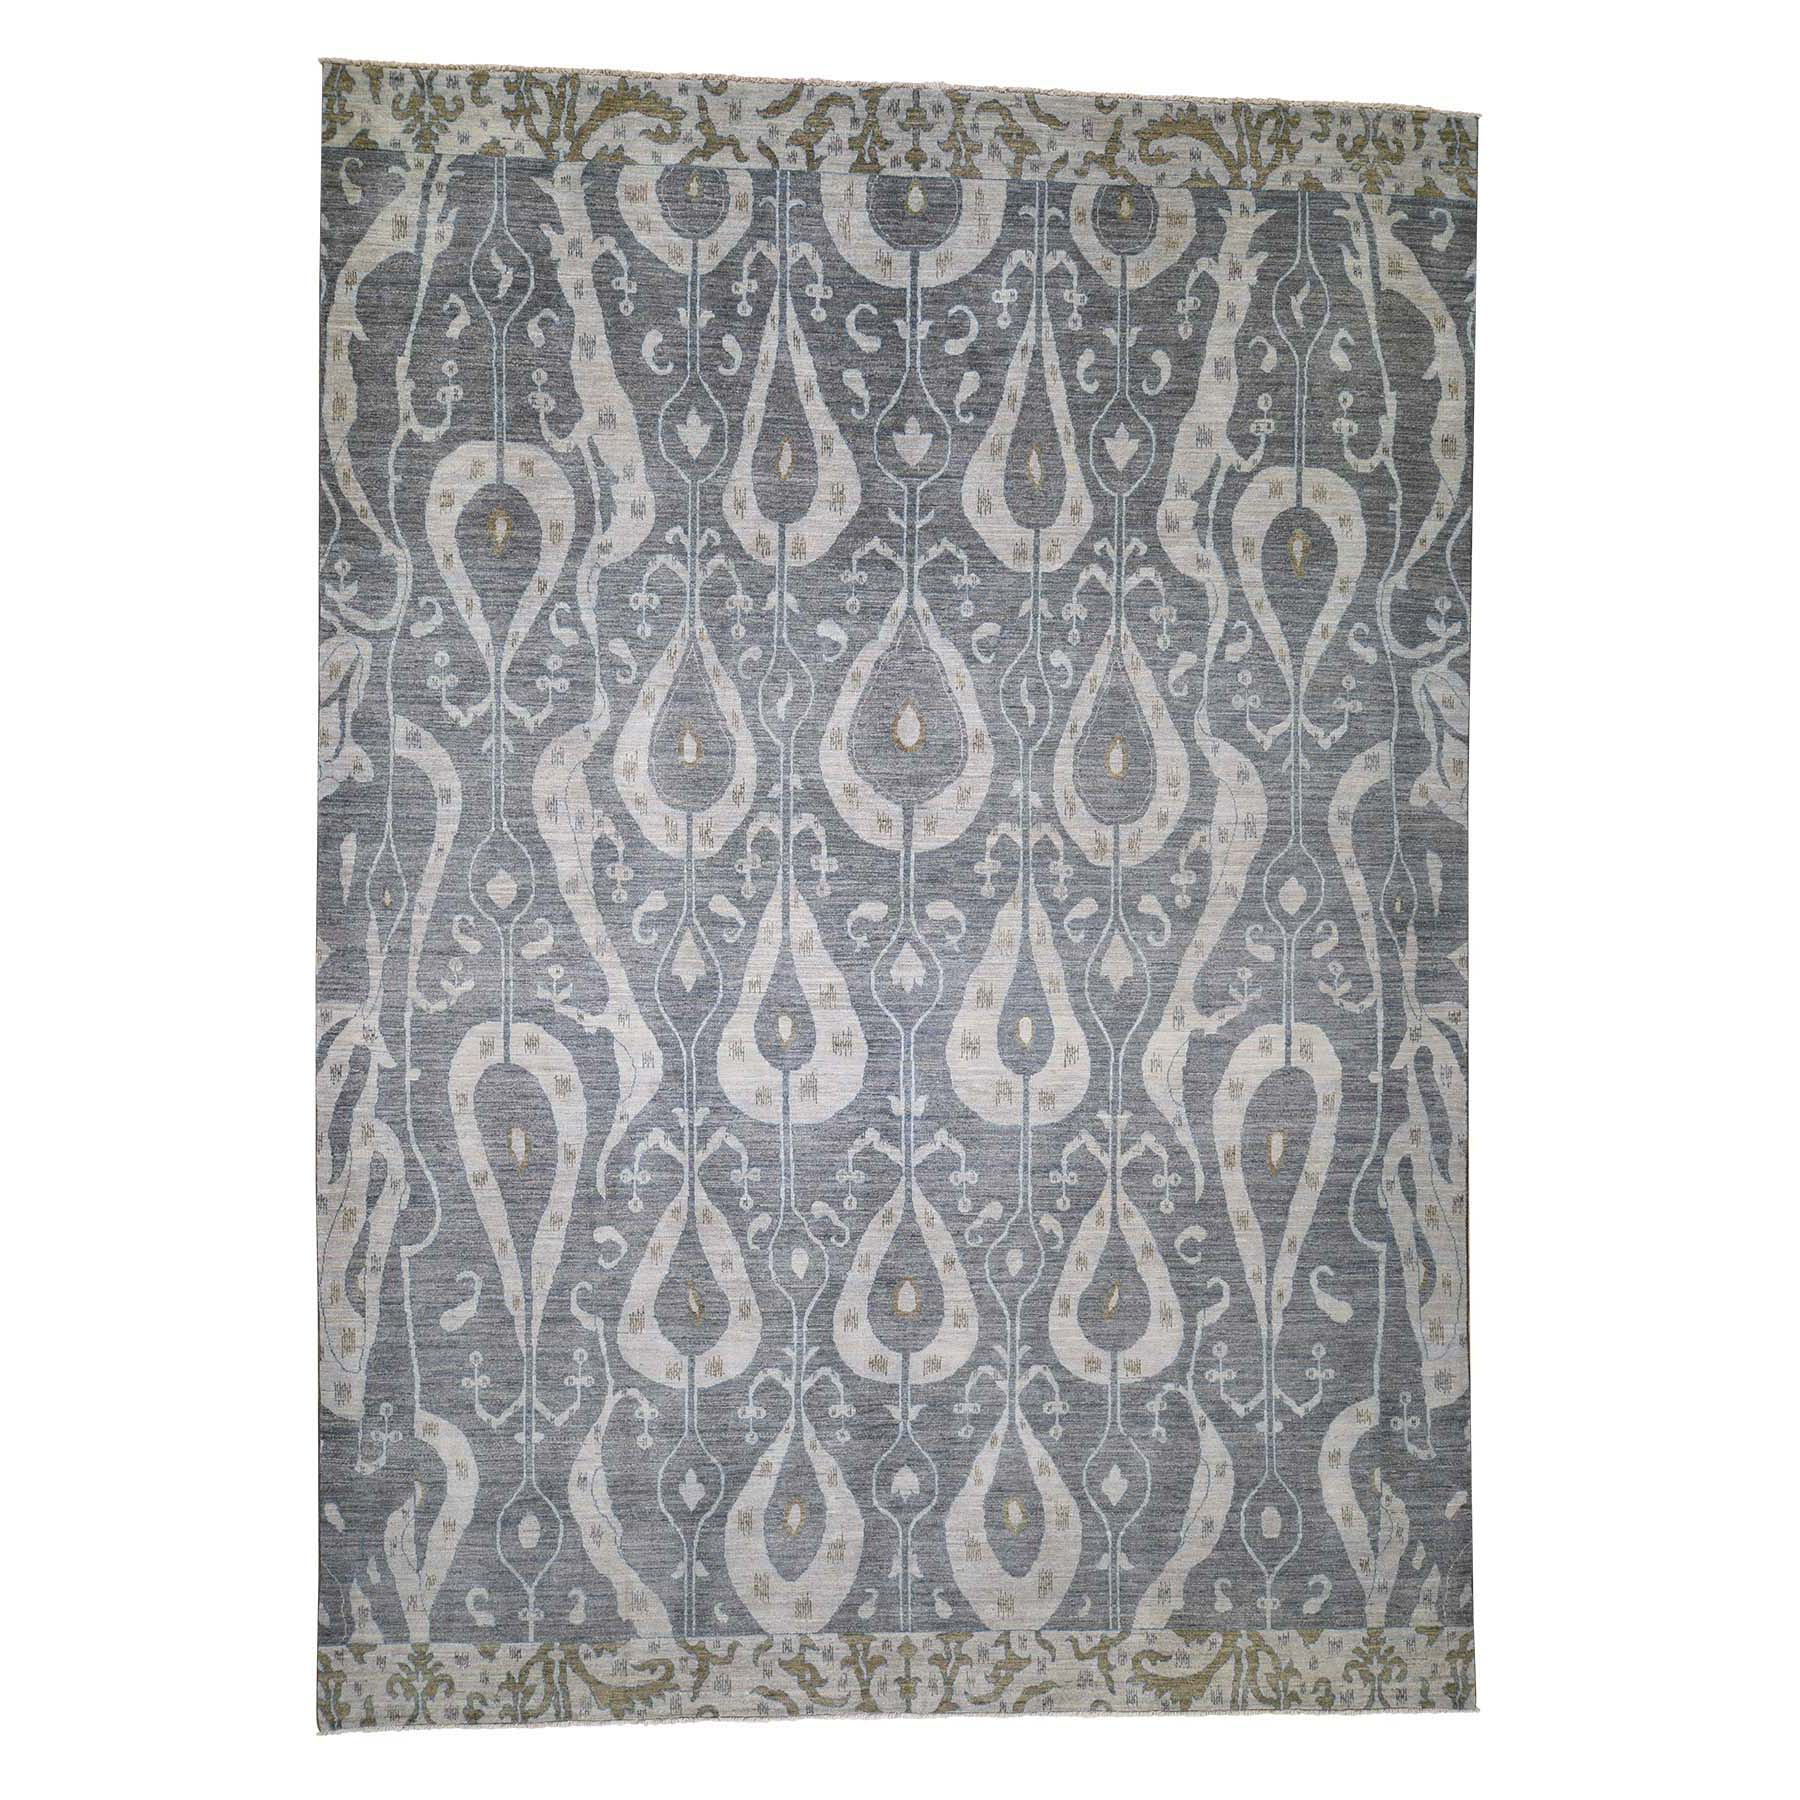 Eclectic and Bohemian Collection Hand Knotted Grey Rug No: 0189572